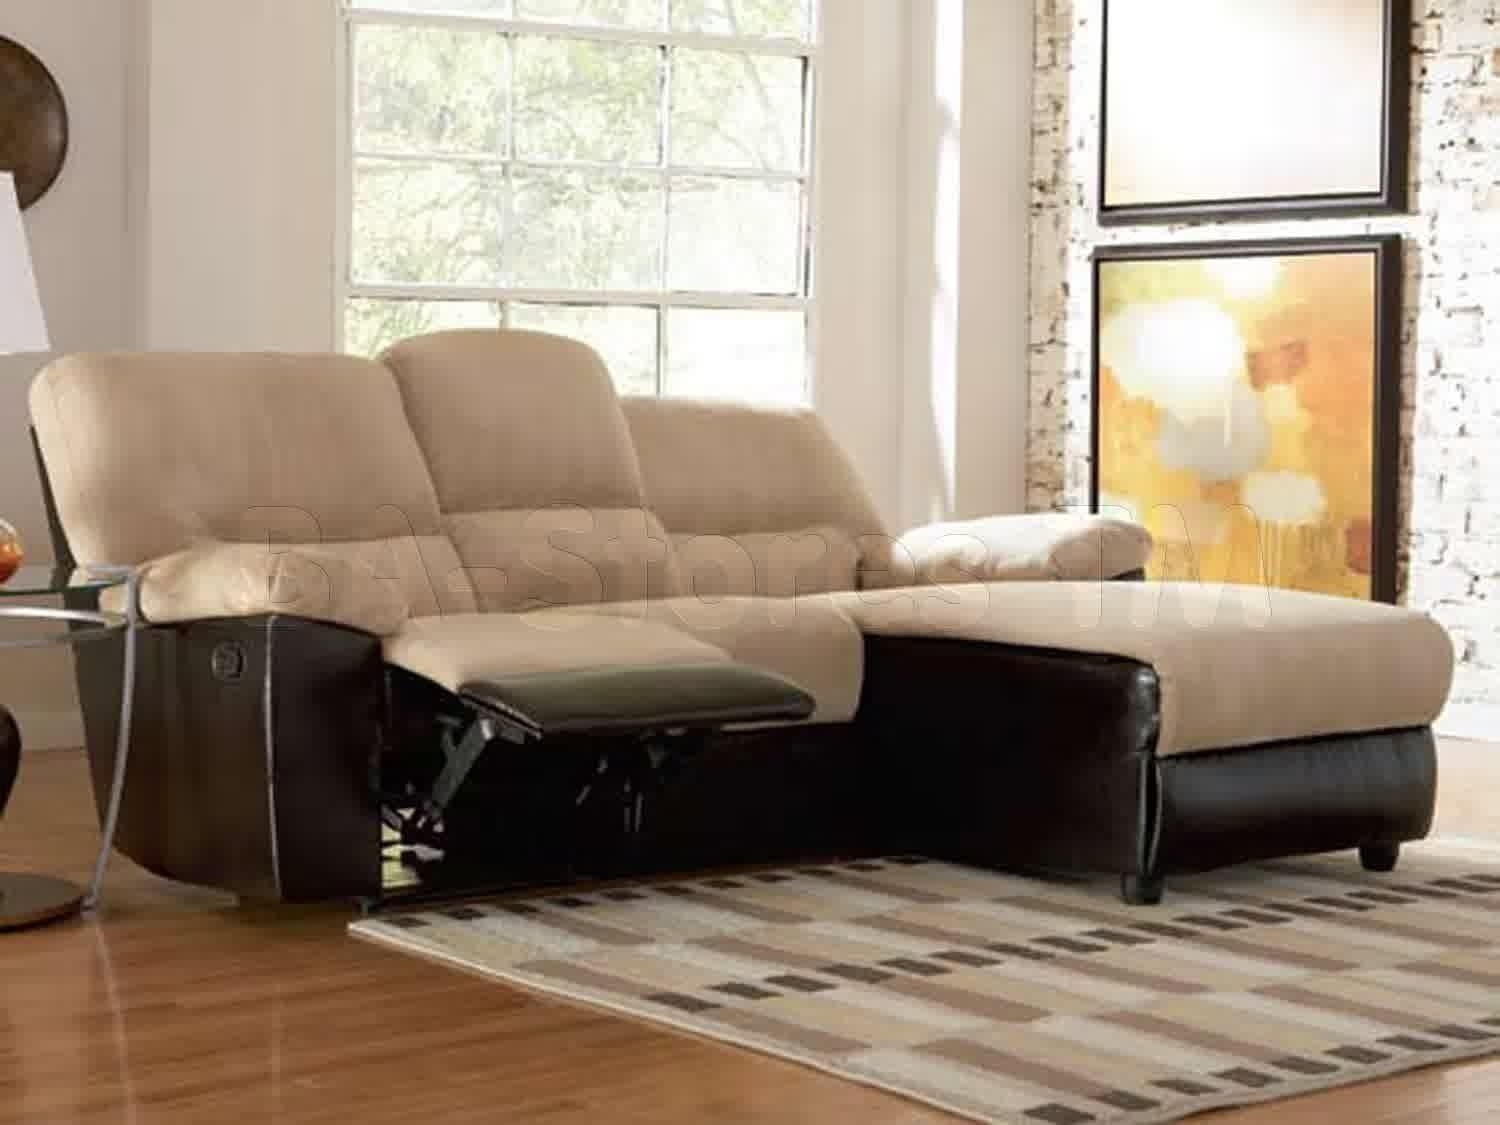 Apartment Sectional Sofa Bed | Tehranmix Decoration In Apartment Sofa Sectional (View 3 of 15)